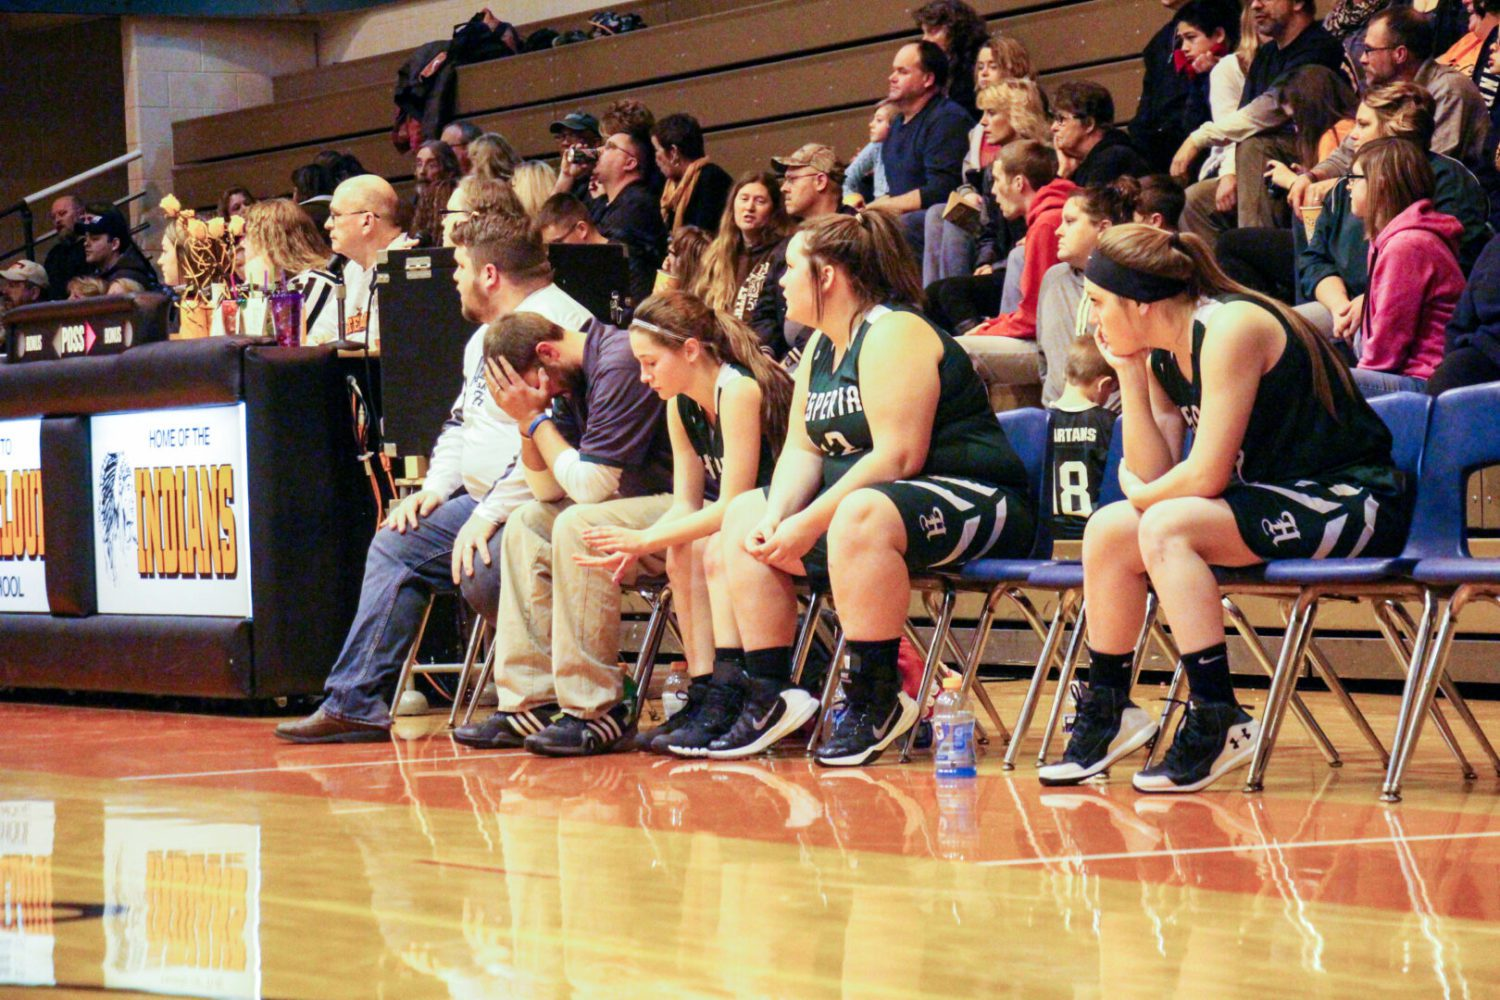 Hesperia girls hoops: 17 painful losses, one exciting win, and they're still having fun!